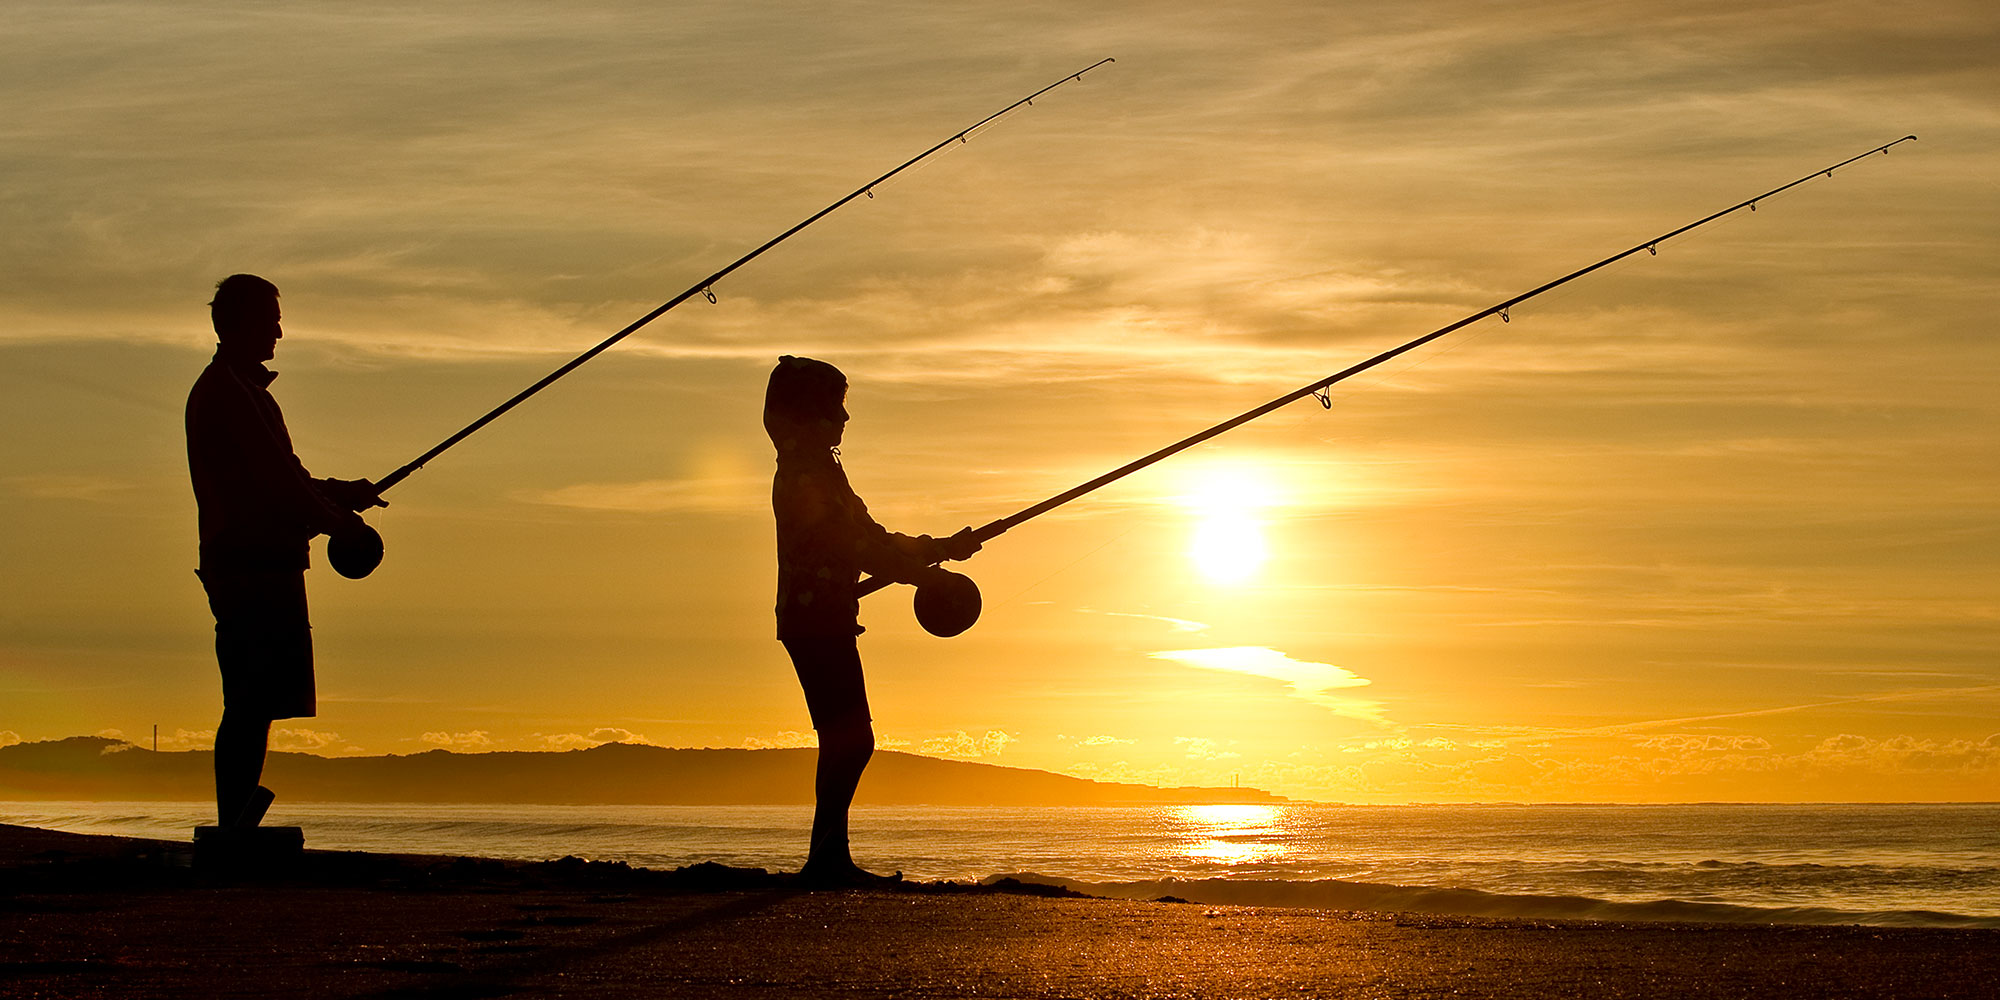 Rise shine it 39 s fishing time visit the shire for Peak fishing times for today